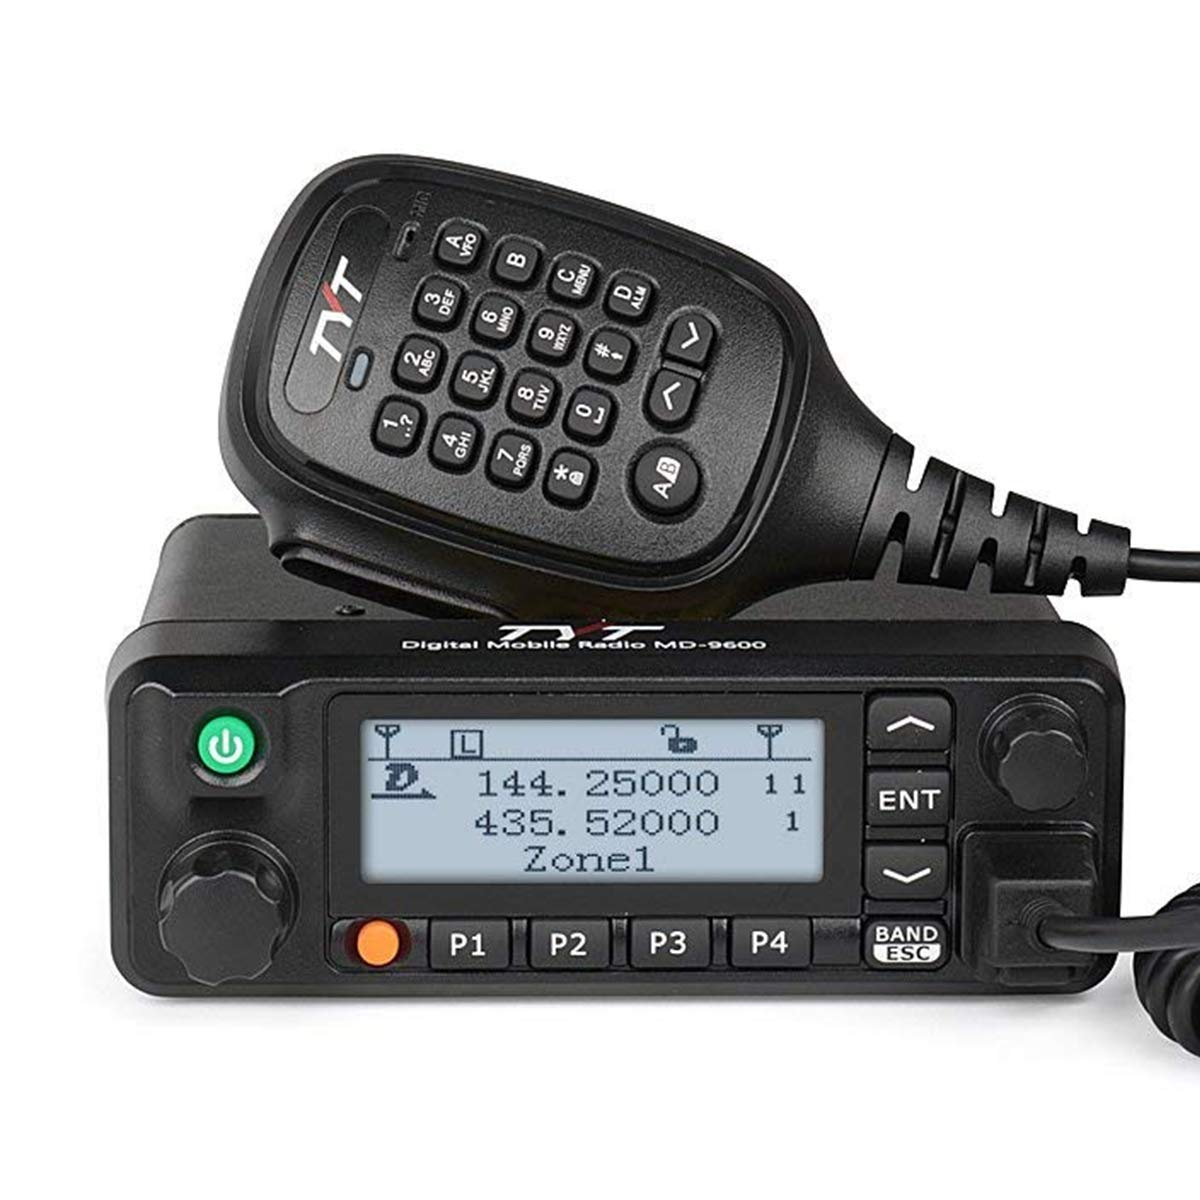 TYT MD-9600 Dual Band Digital DMR Mobile Car Truck Transceiver, VHF/UHF 3000 Channels,10000 Contacts, 250 Zones, 50W VHF/45W UHF/25W Amateur Ham Radio with Programming Cable